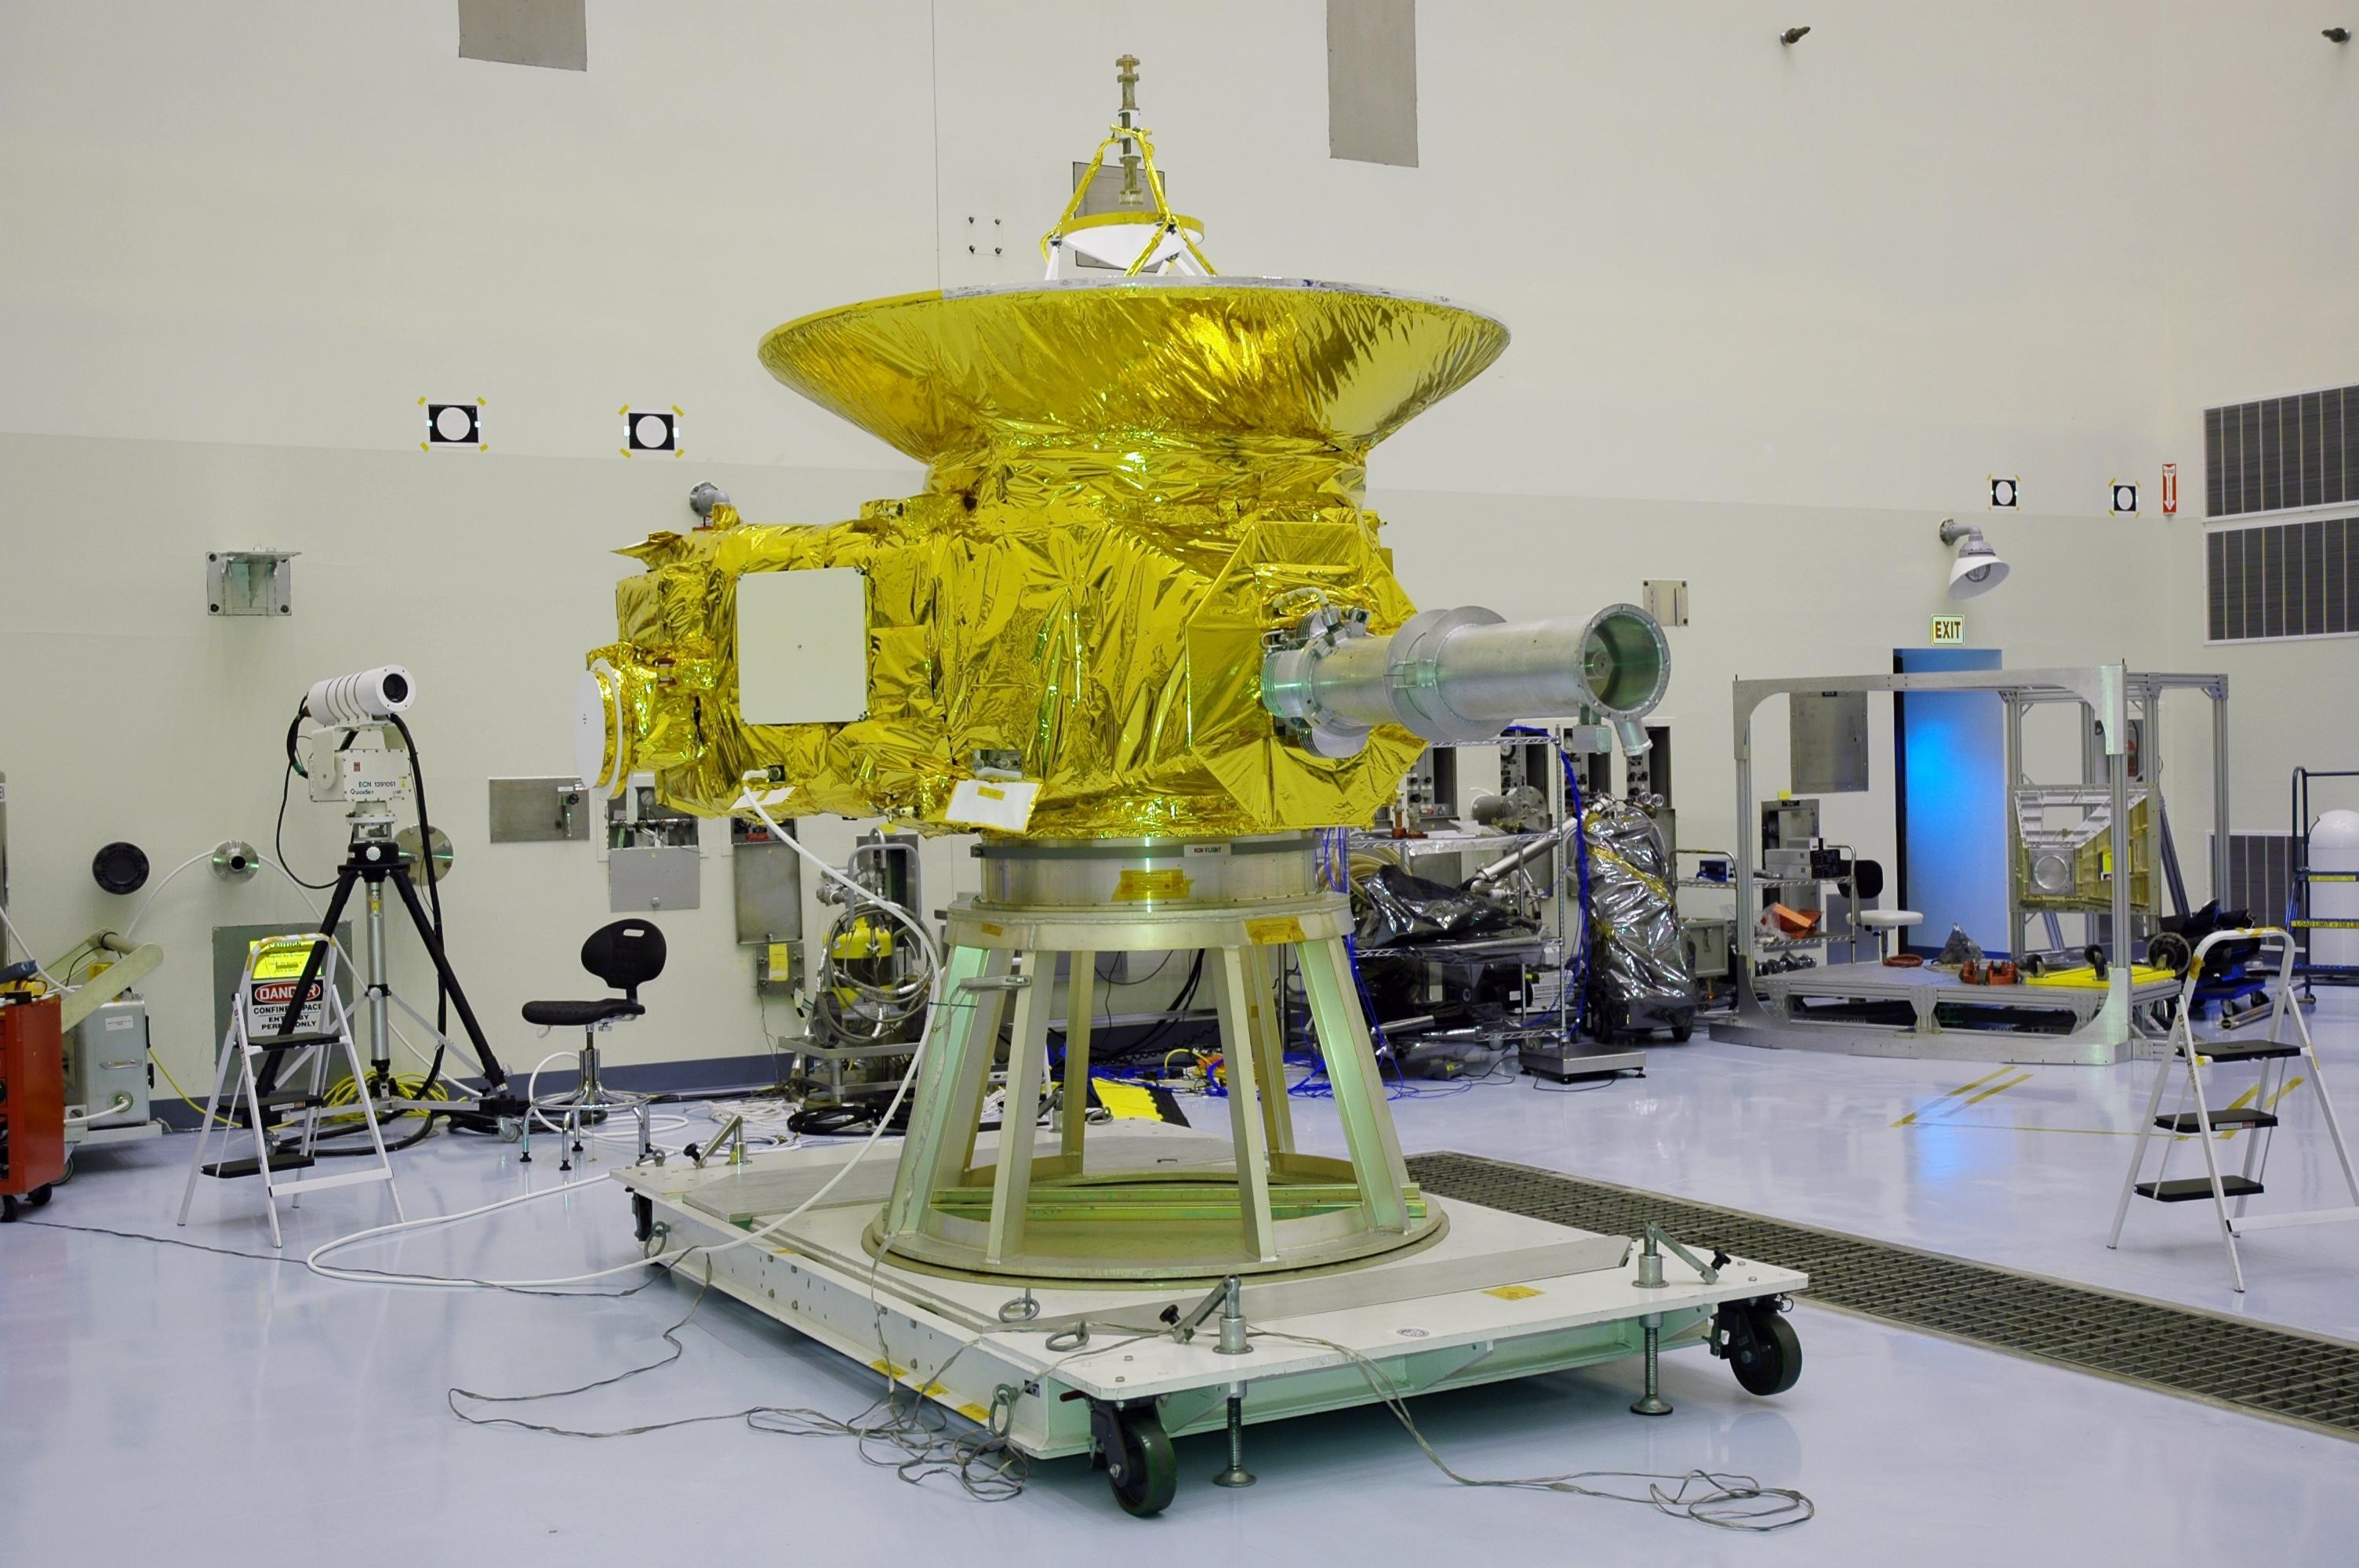 In NASA Kennedy Space Center's Payload Hazardous Servicing Facility, the New Horizons spacecraft sits on a work stand before its launch